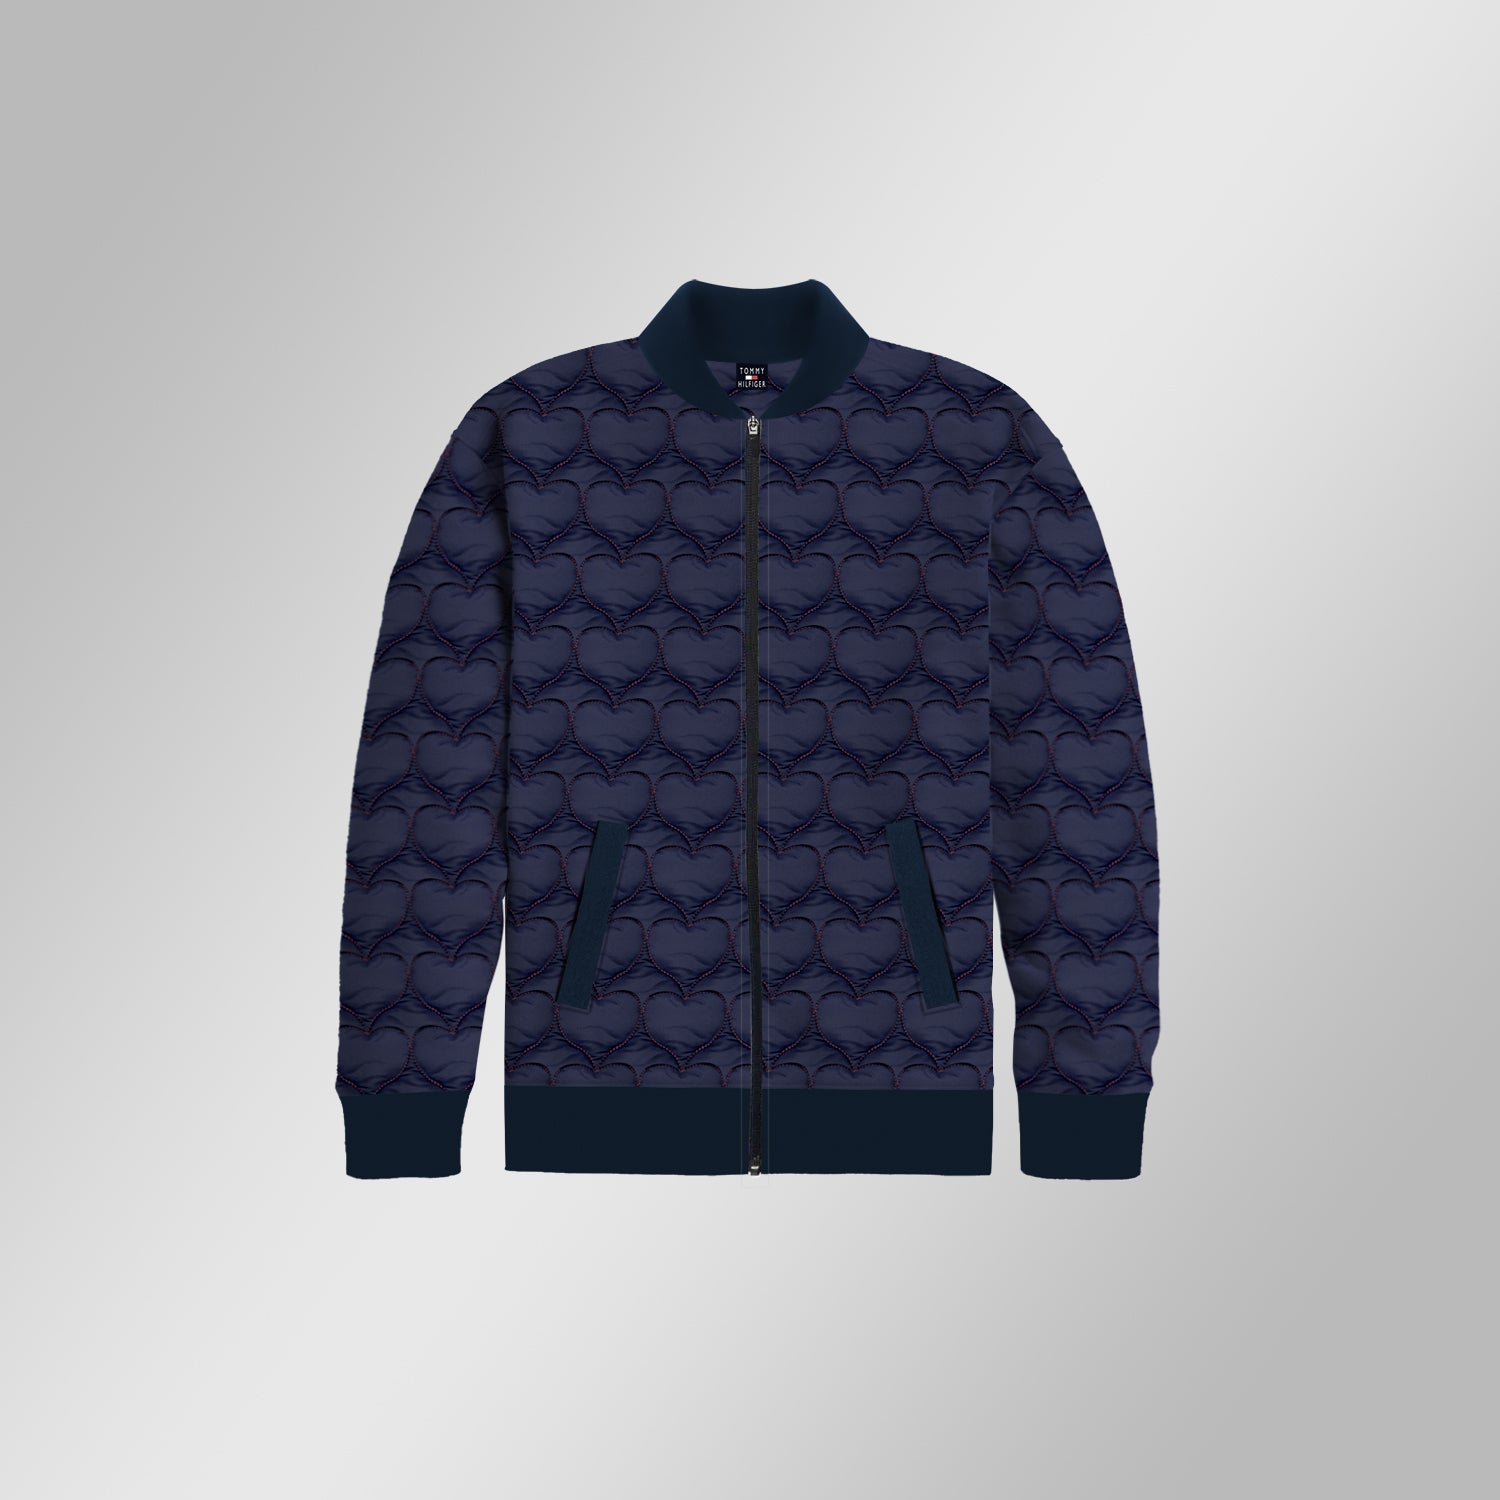 TH Quilted Zipper Baseball Jacket For Kids-Navy Heart Quilted-BE13397